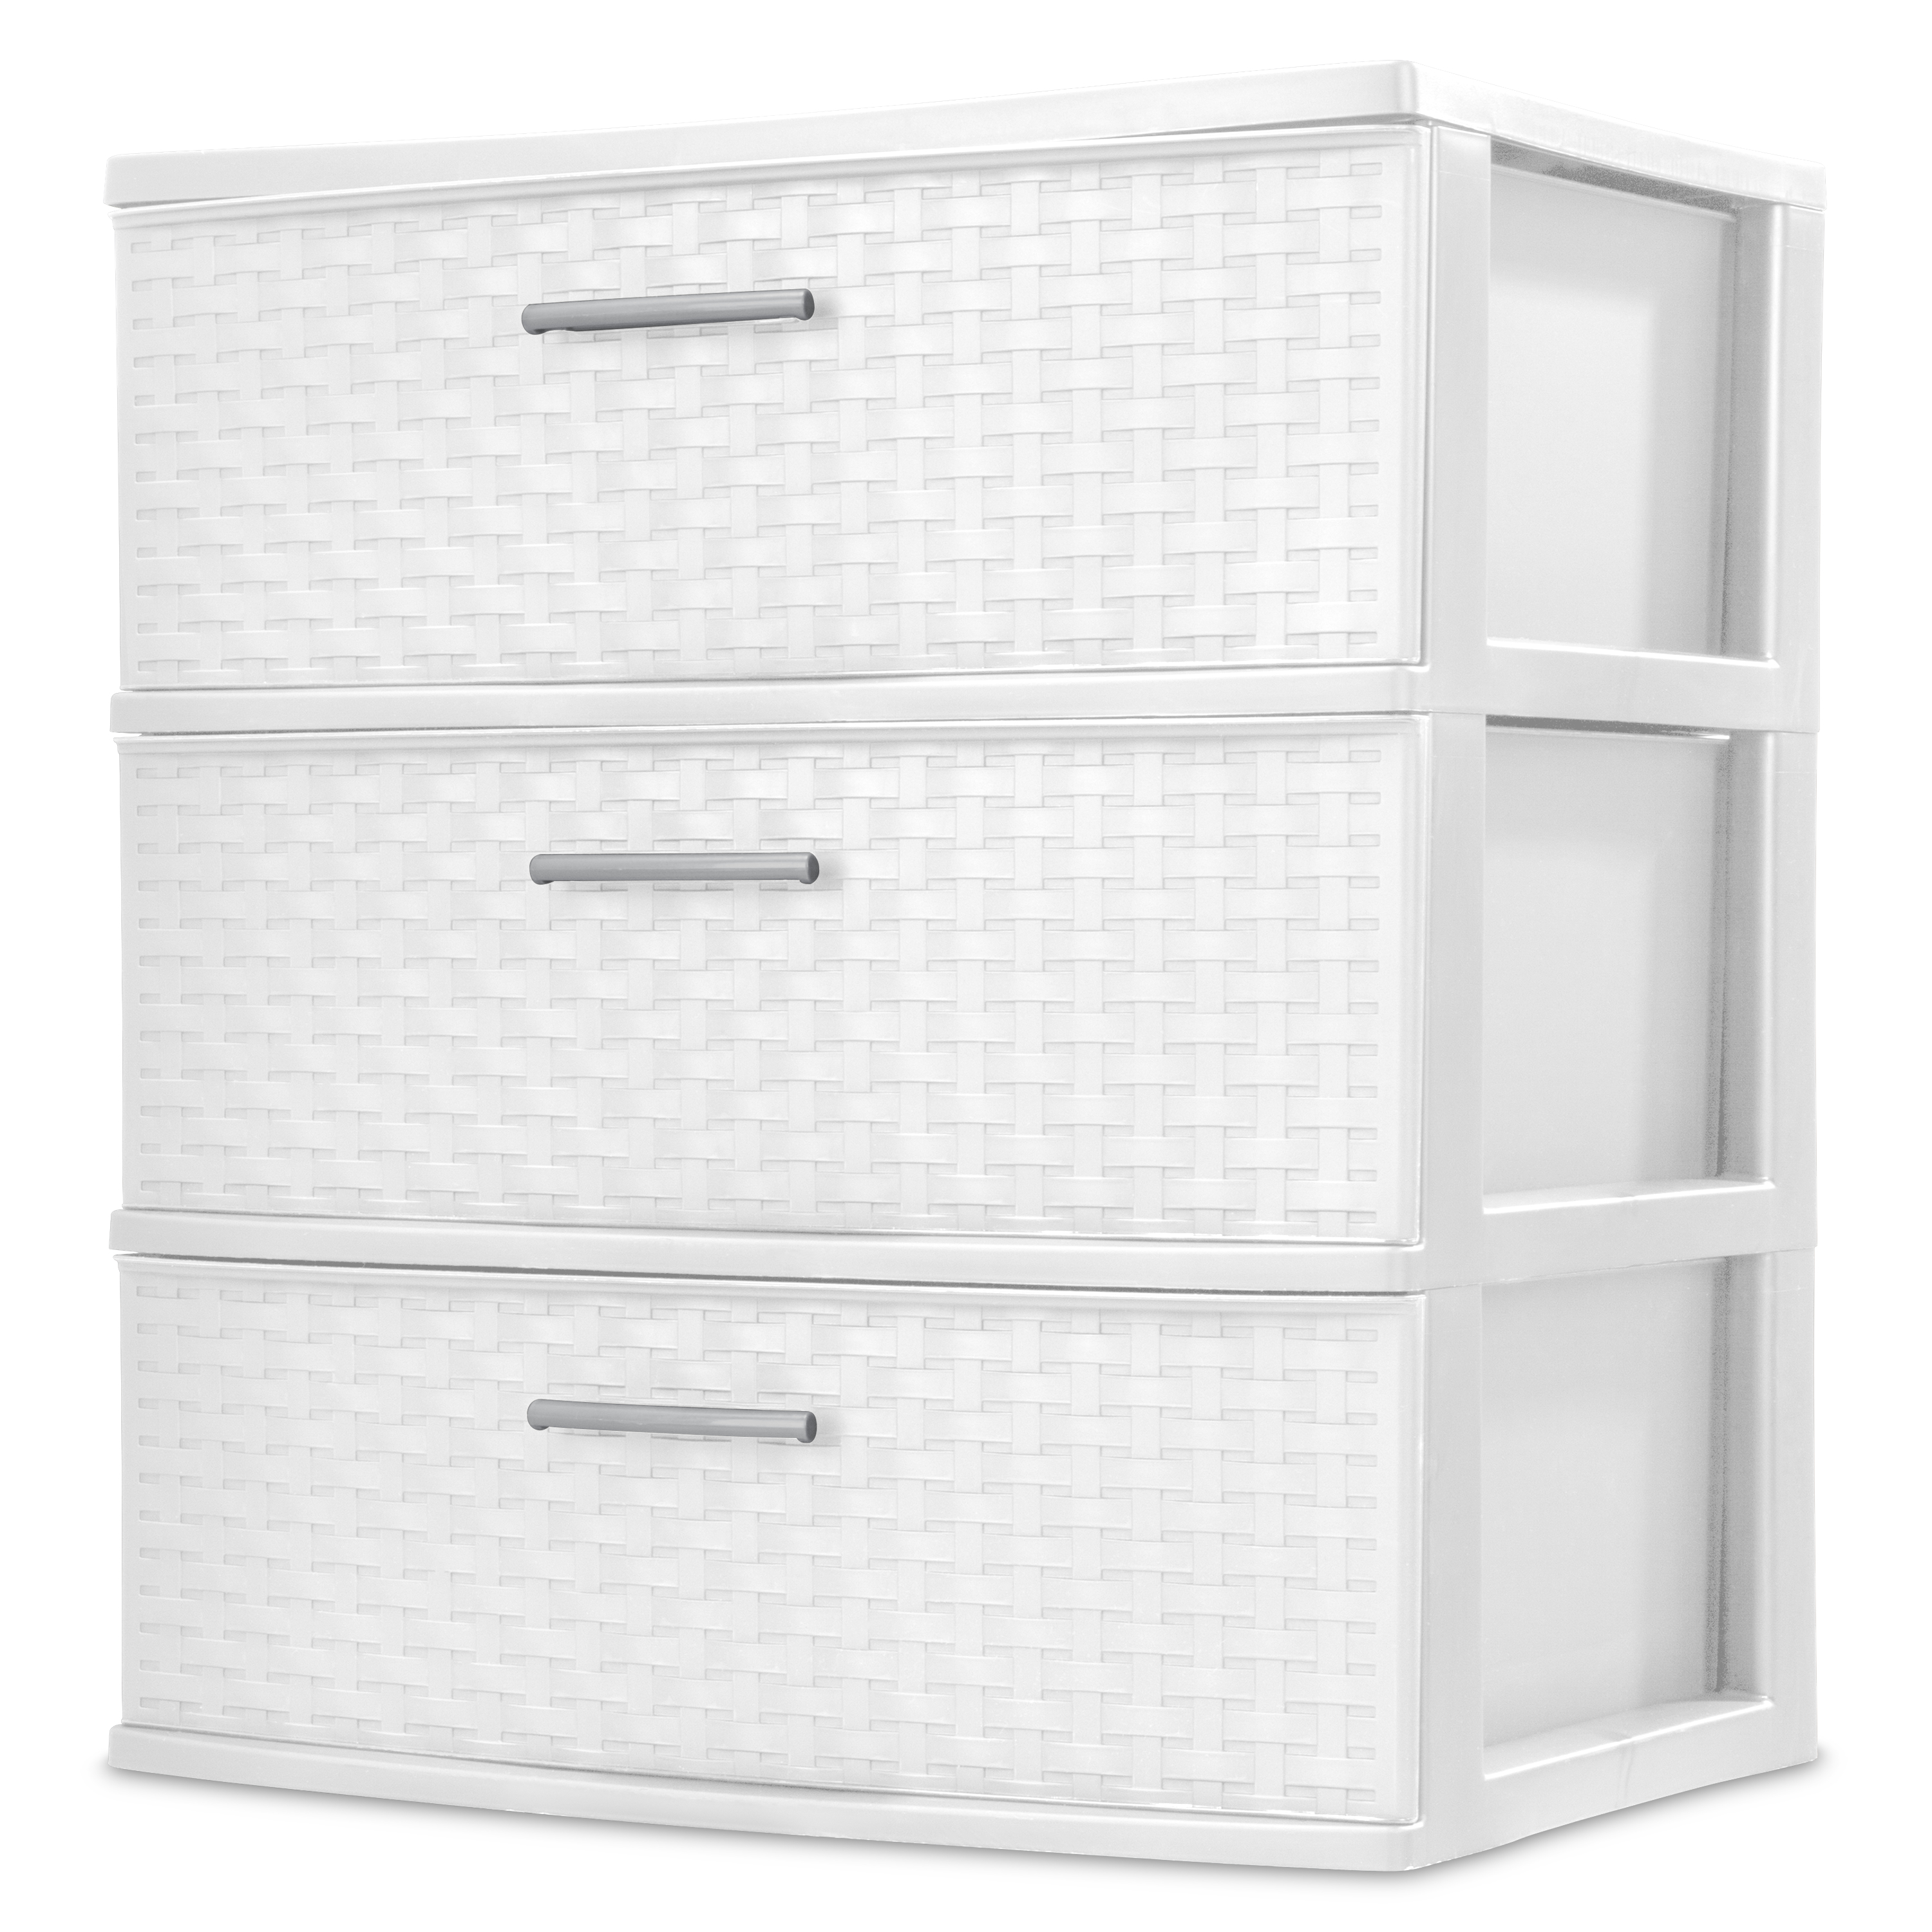 Sterilite, 3 Drawer Wide Weave Tower